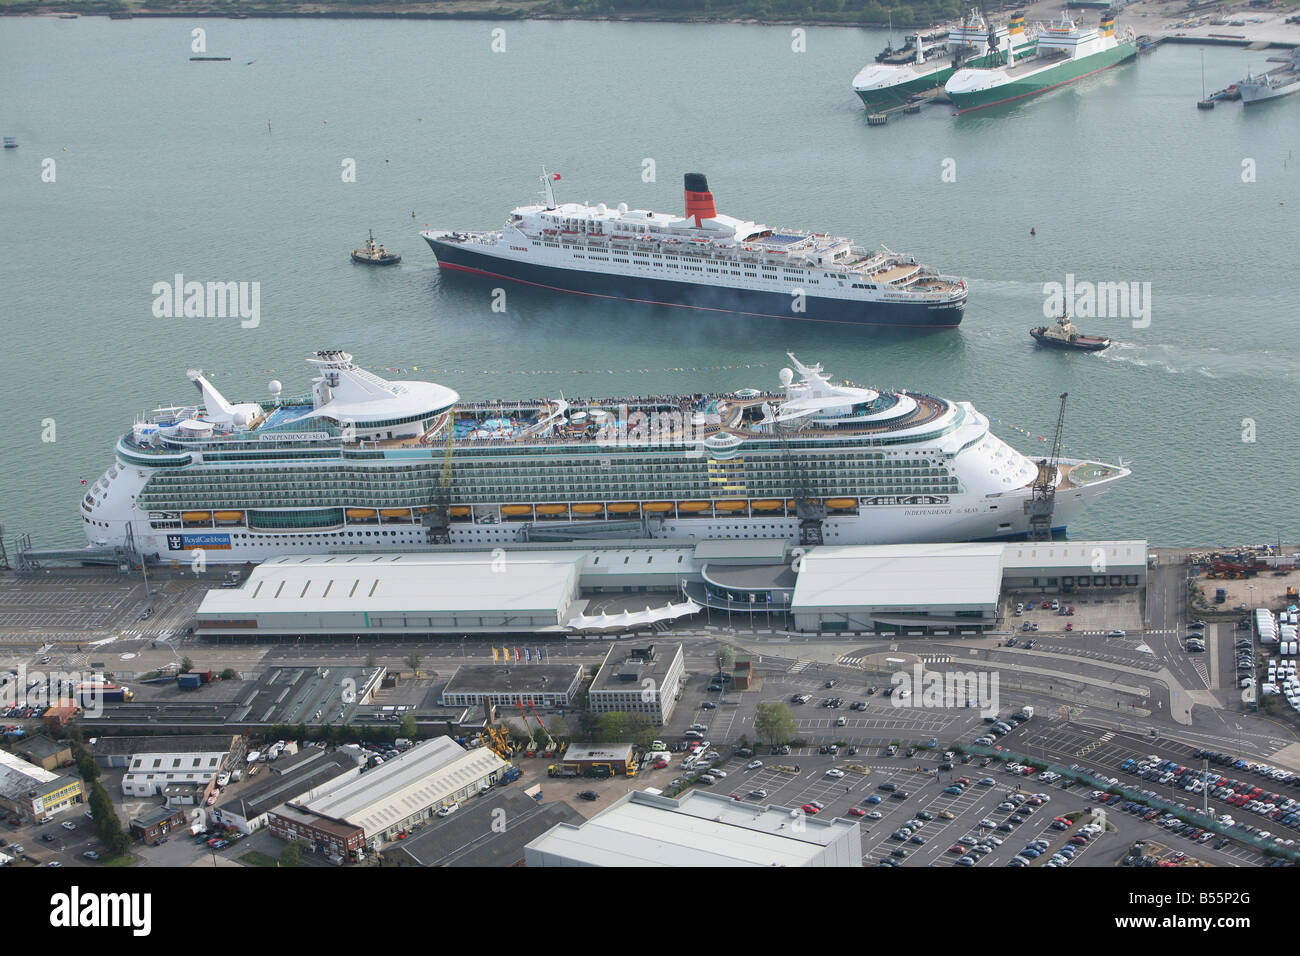 Queen Elisabeth 2 (QE2) passes Independence of the Seas on it's way out of Southampton Docks. Stock Photo